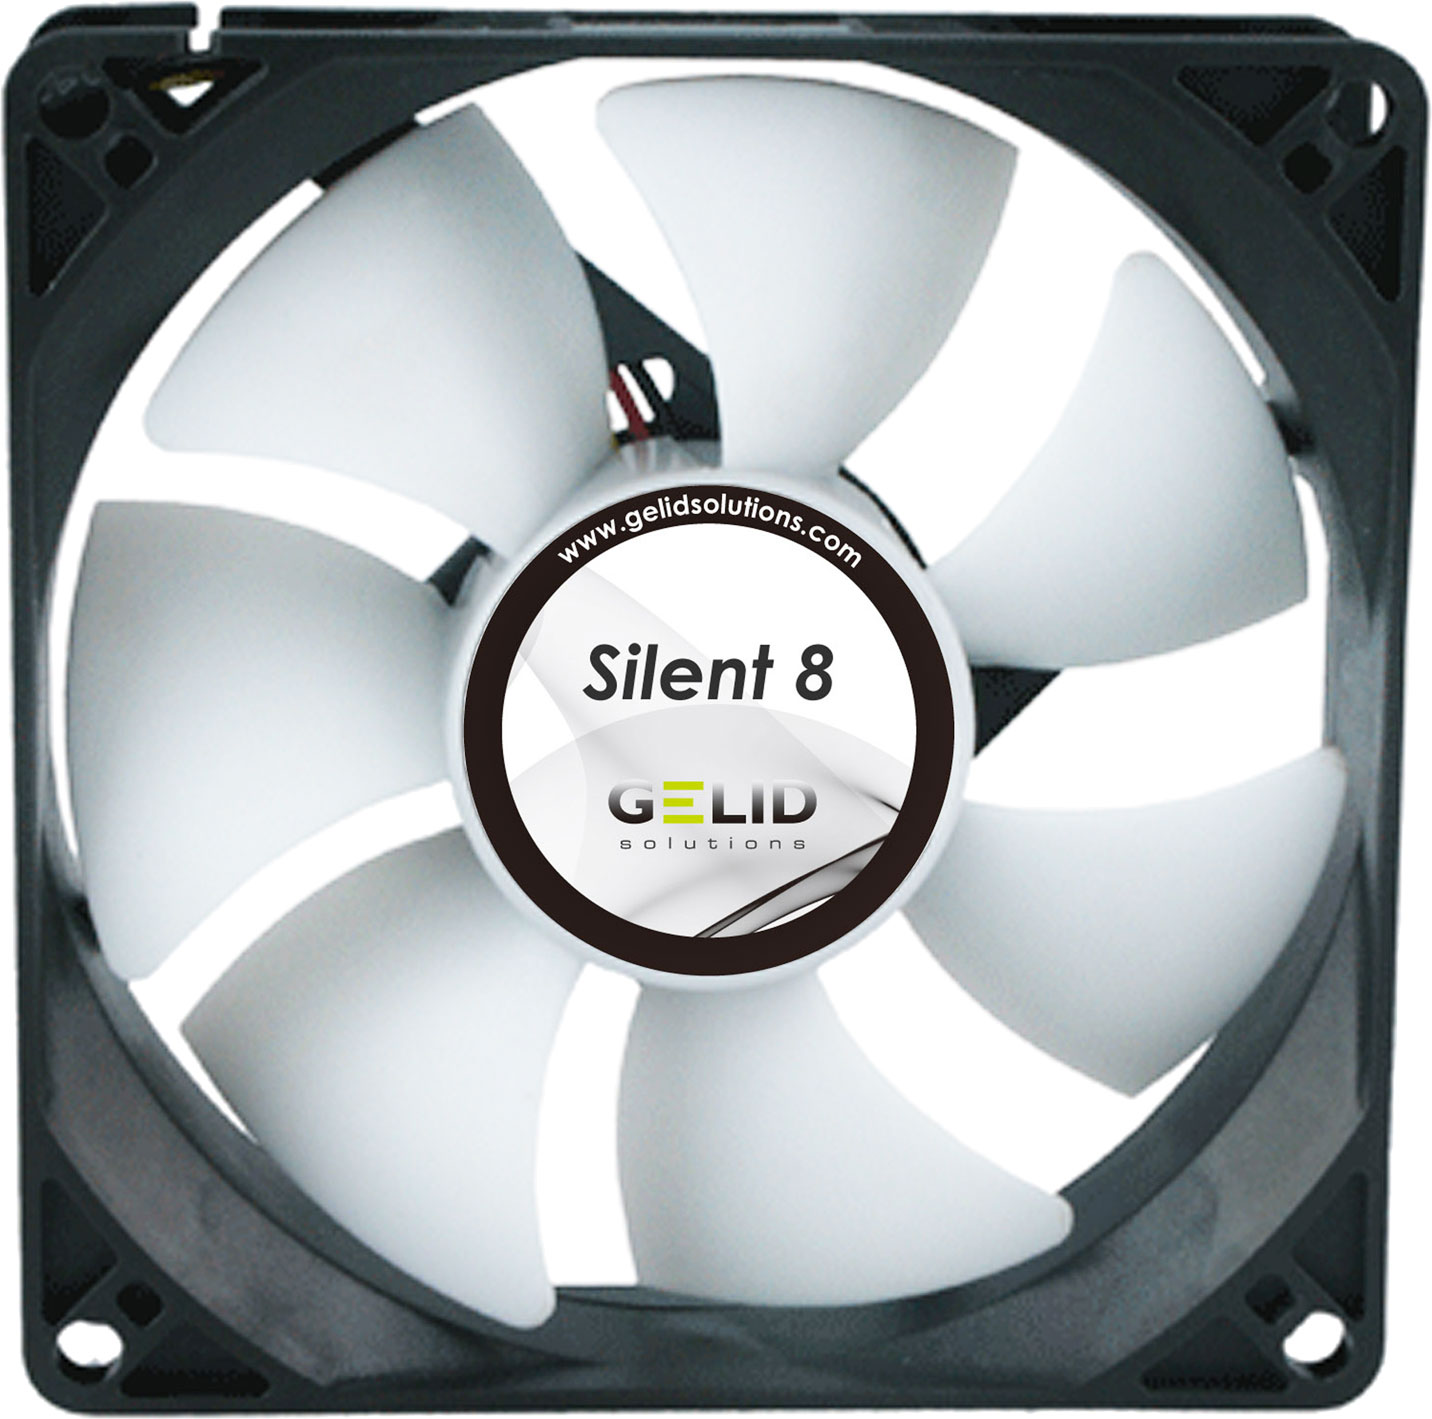 fan quiet. designed for silent enthusiasts, gelid case fans provide additional airflow without increasing noise levels and at affordable price. fan quiet pc